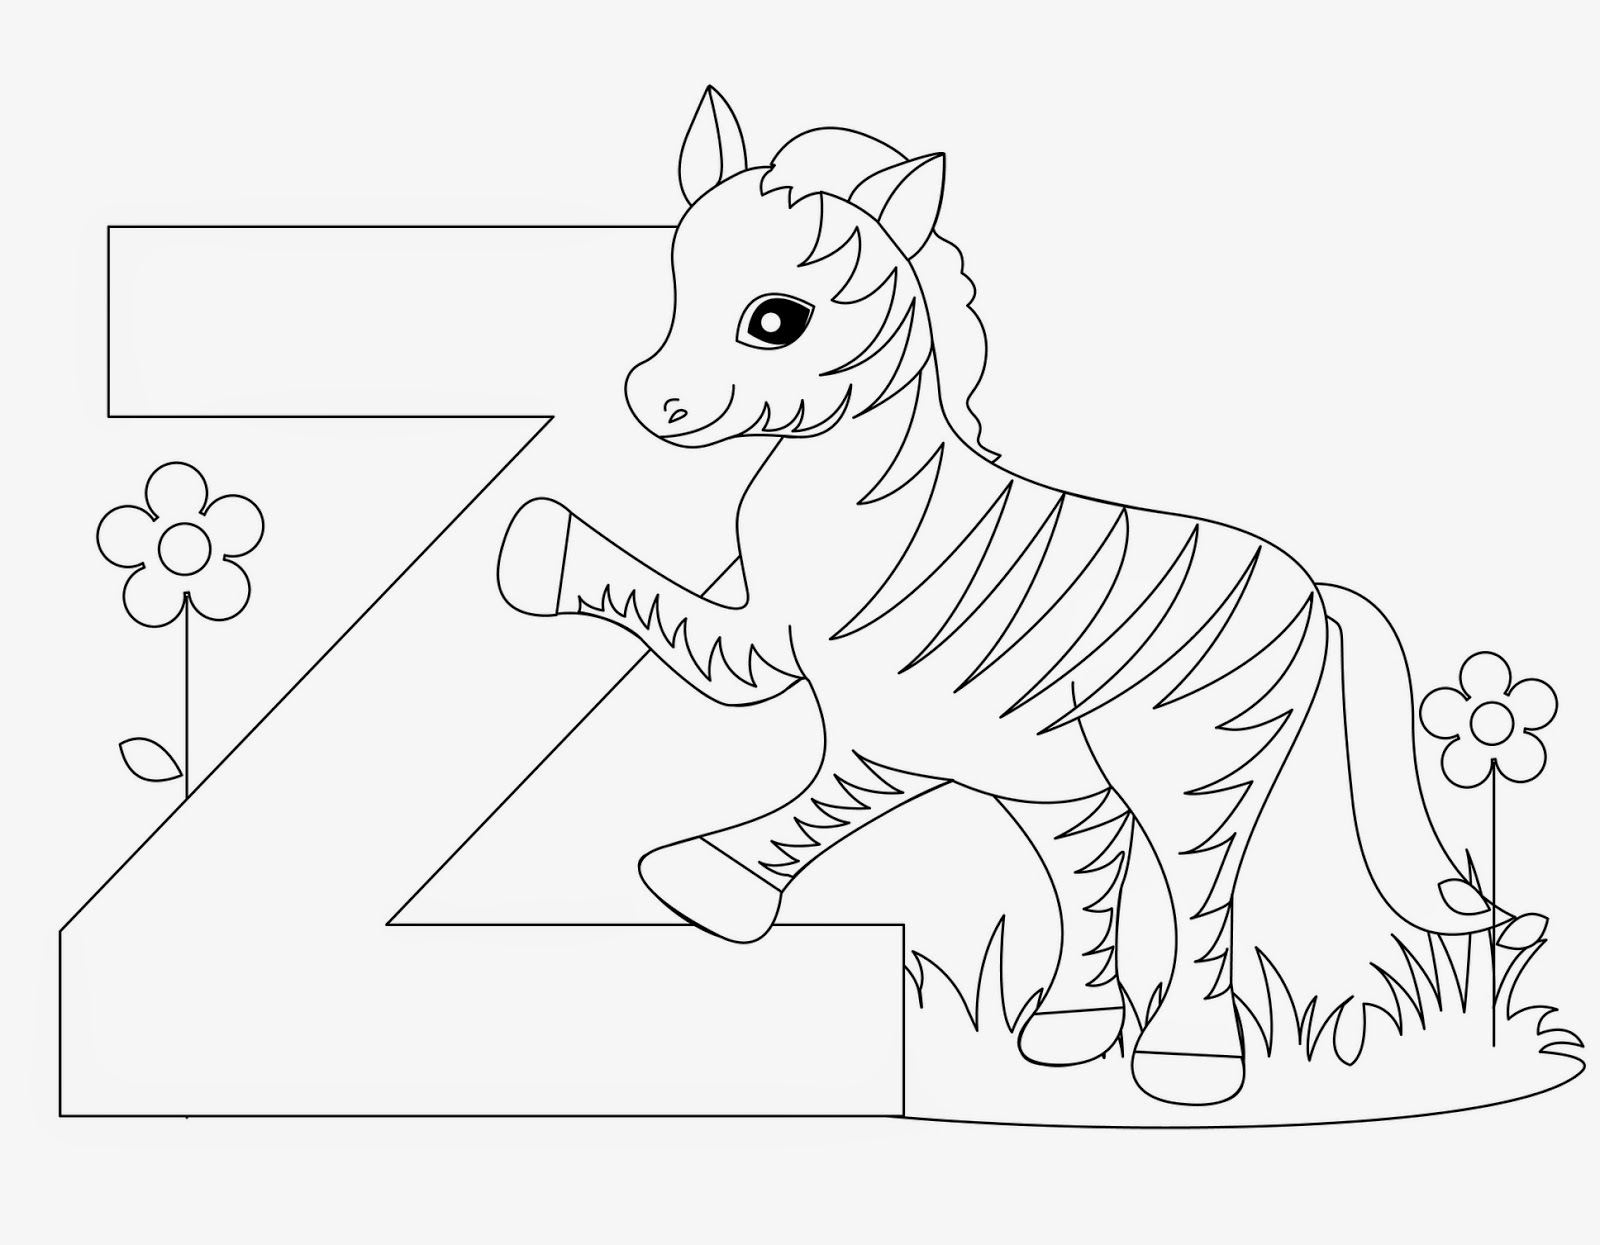 animal alphabet colouring pages fun learn free worksheets for kid ภาพระบายส abc a z colouring pages animal alphabet